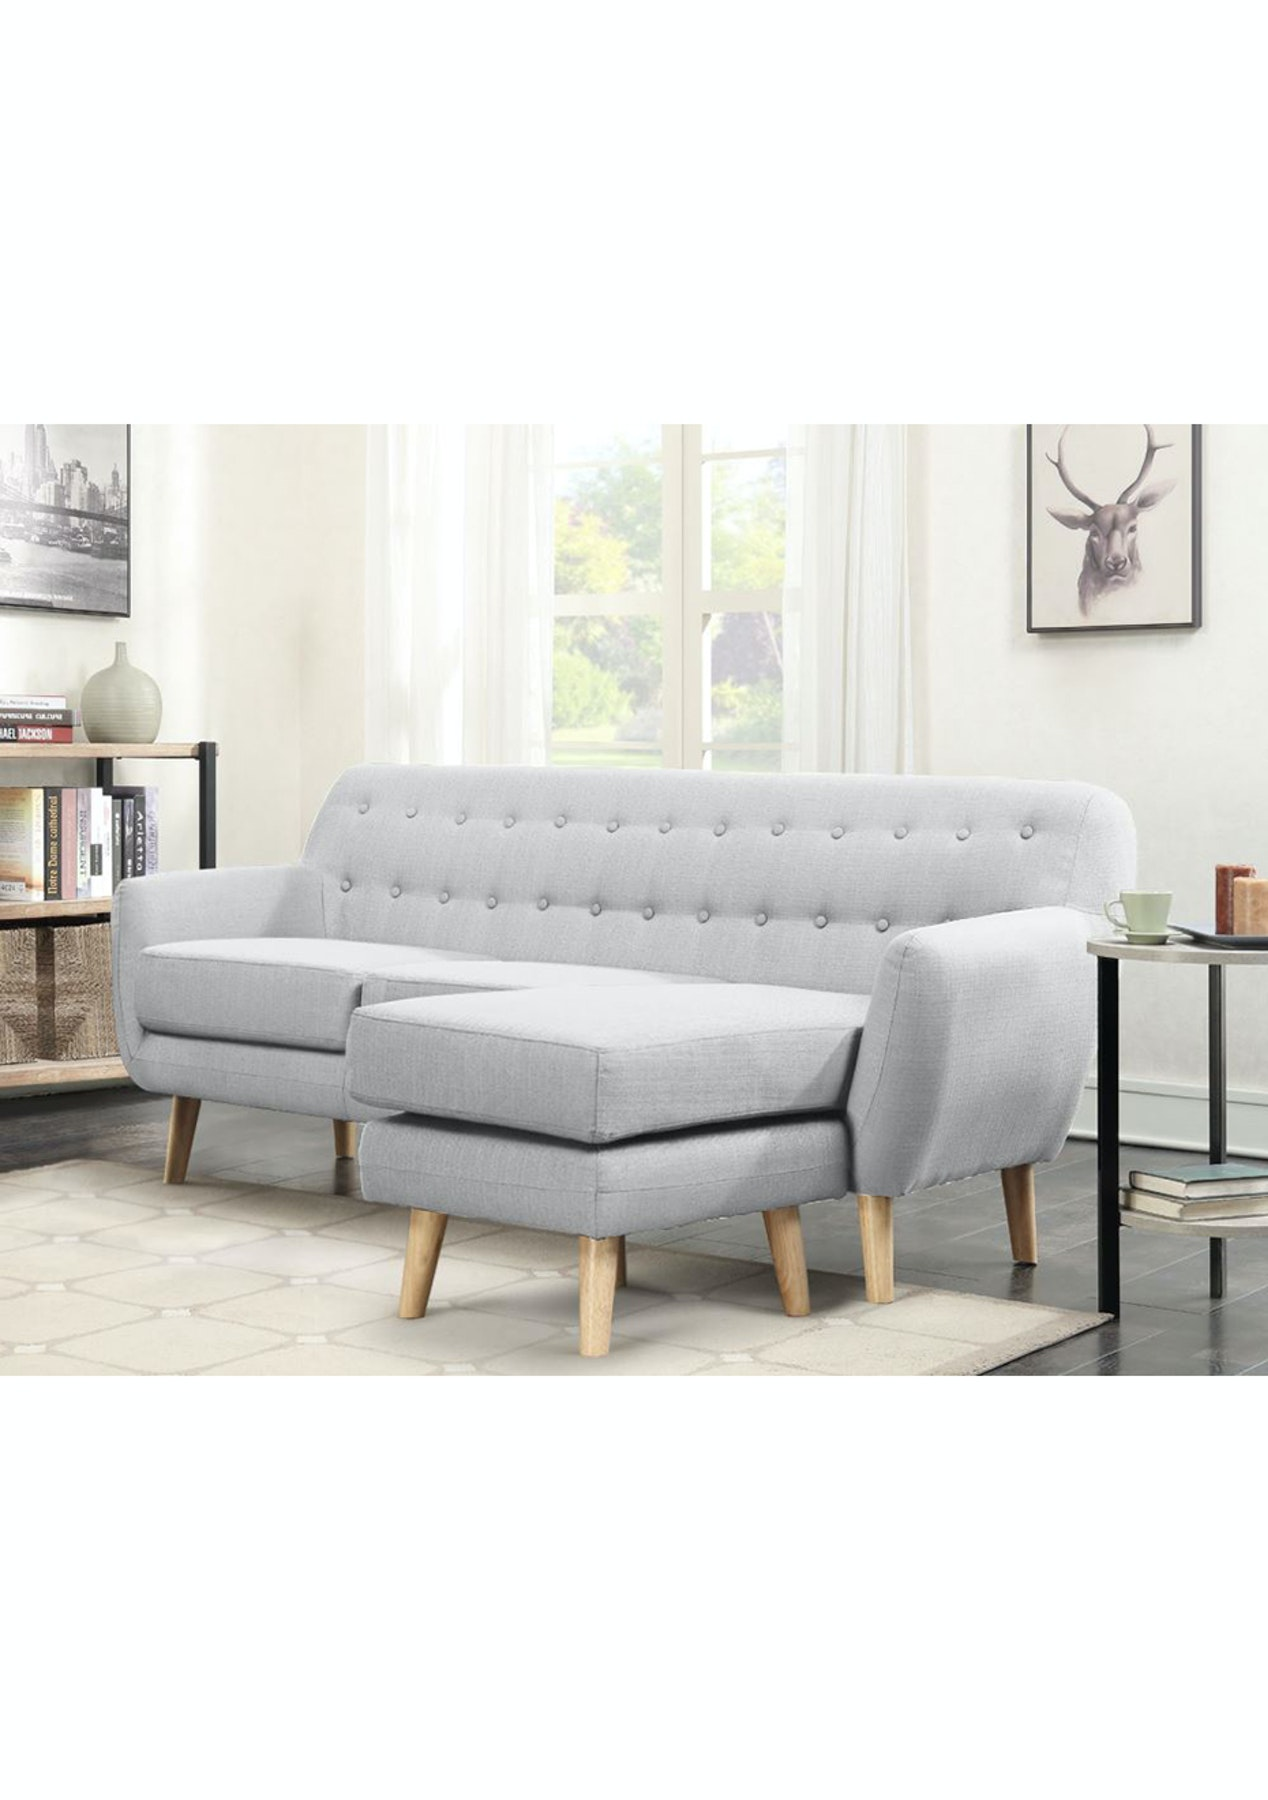 of bench bed lounge henderson full end sofa fabric size literarywondrous longue photo chaise ideas mordern benches seat retro design linen emily